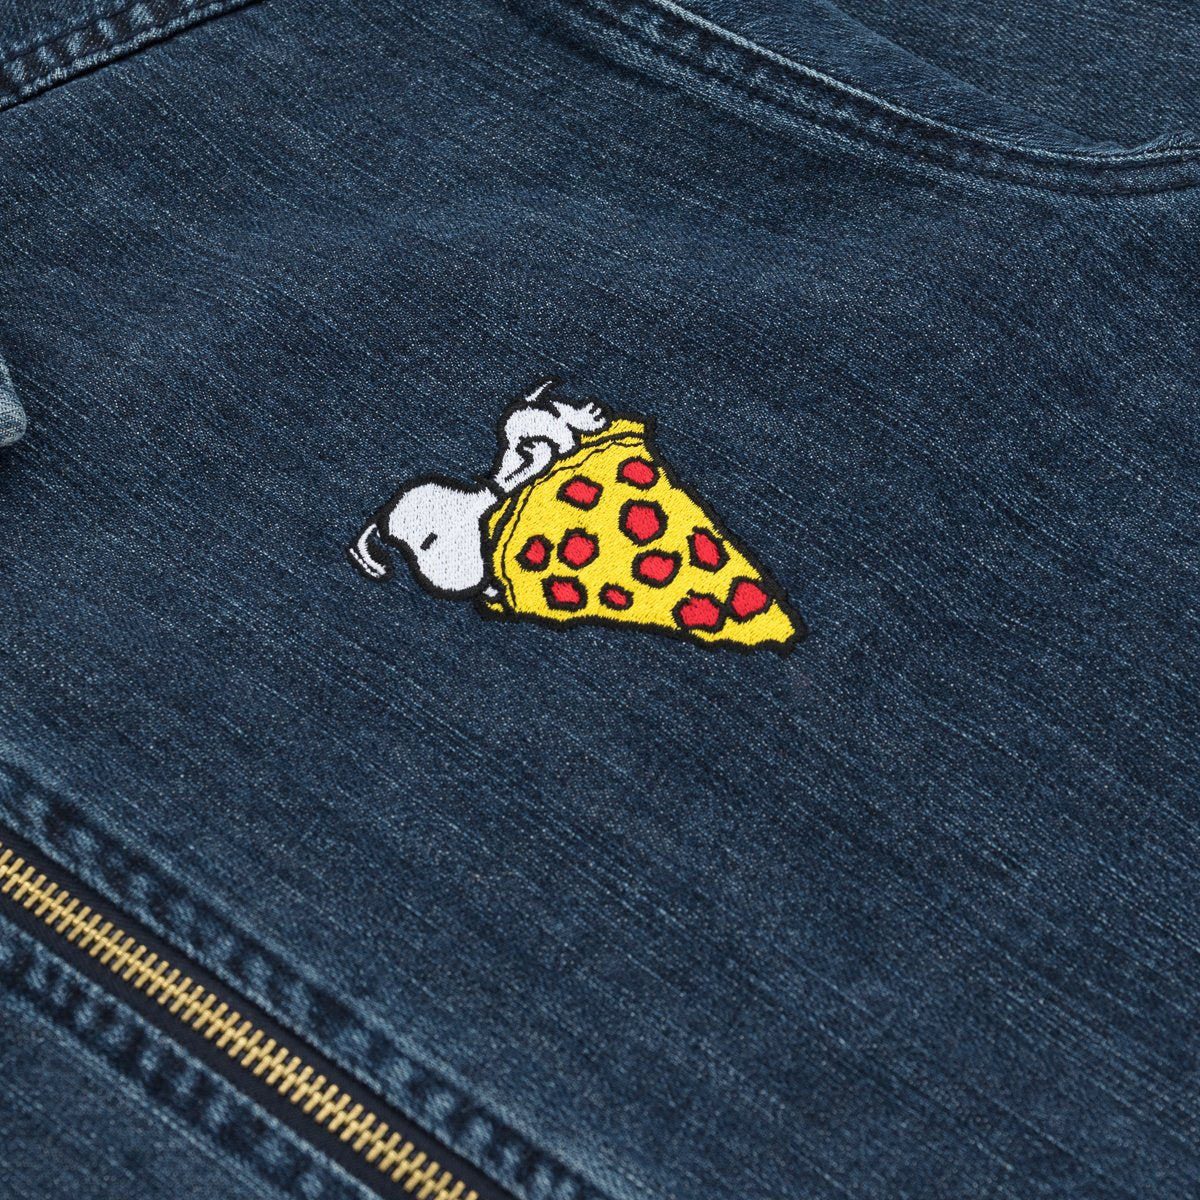 Snoopy Pizza Jacket